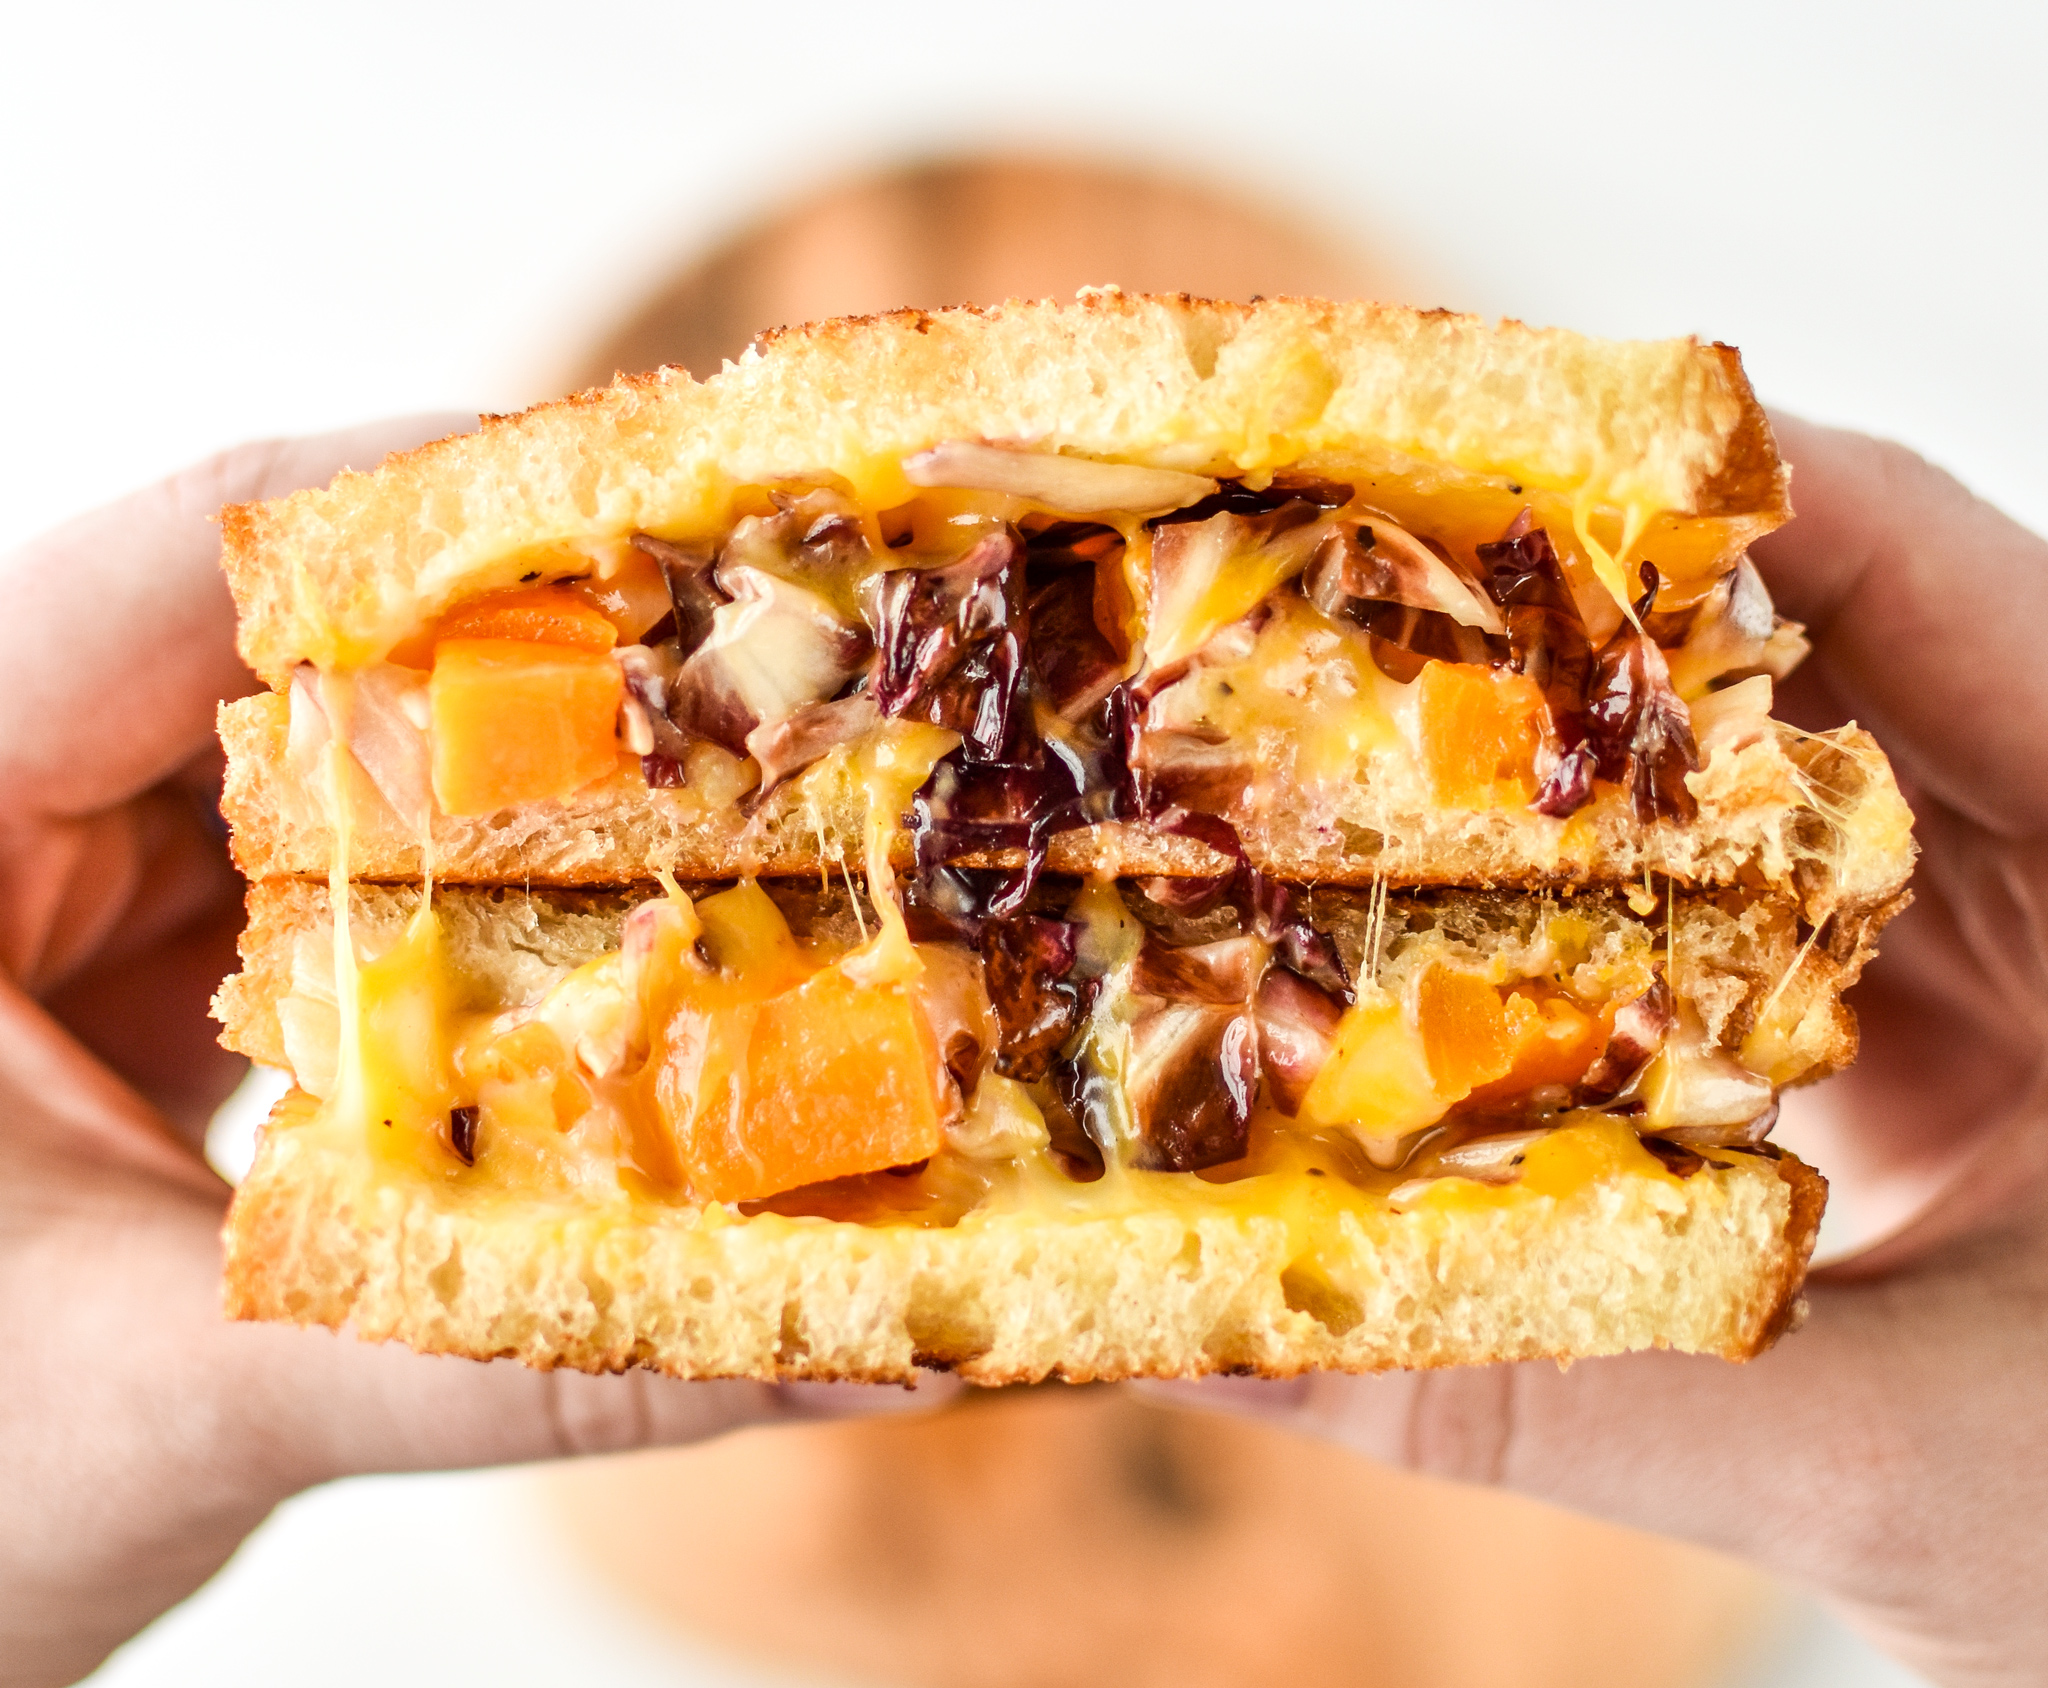 Holding a roasted squash salad grilled cheese sandwich